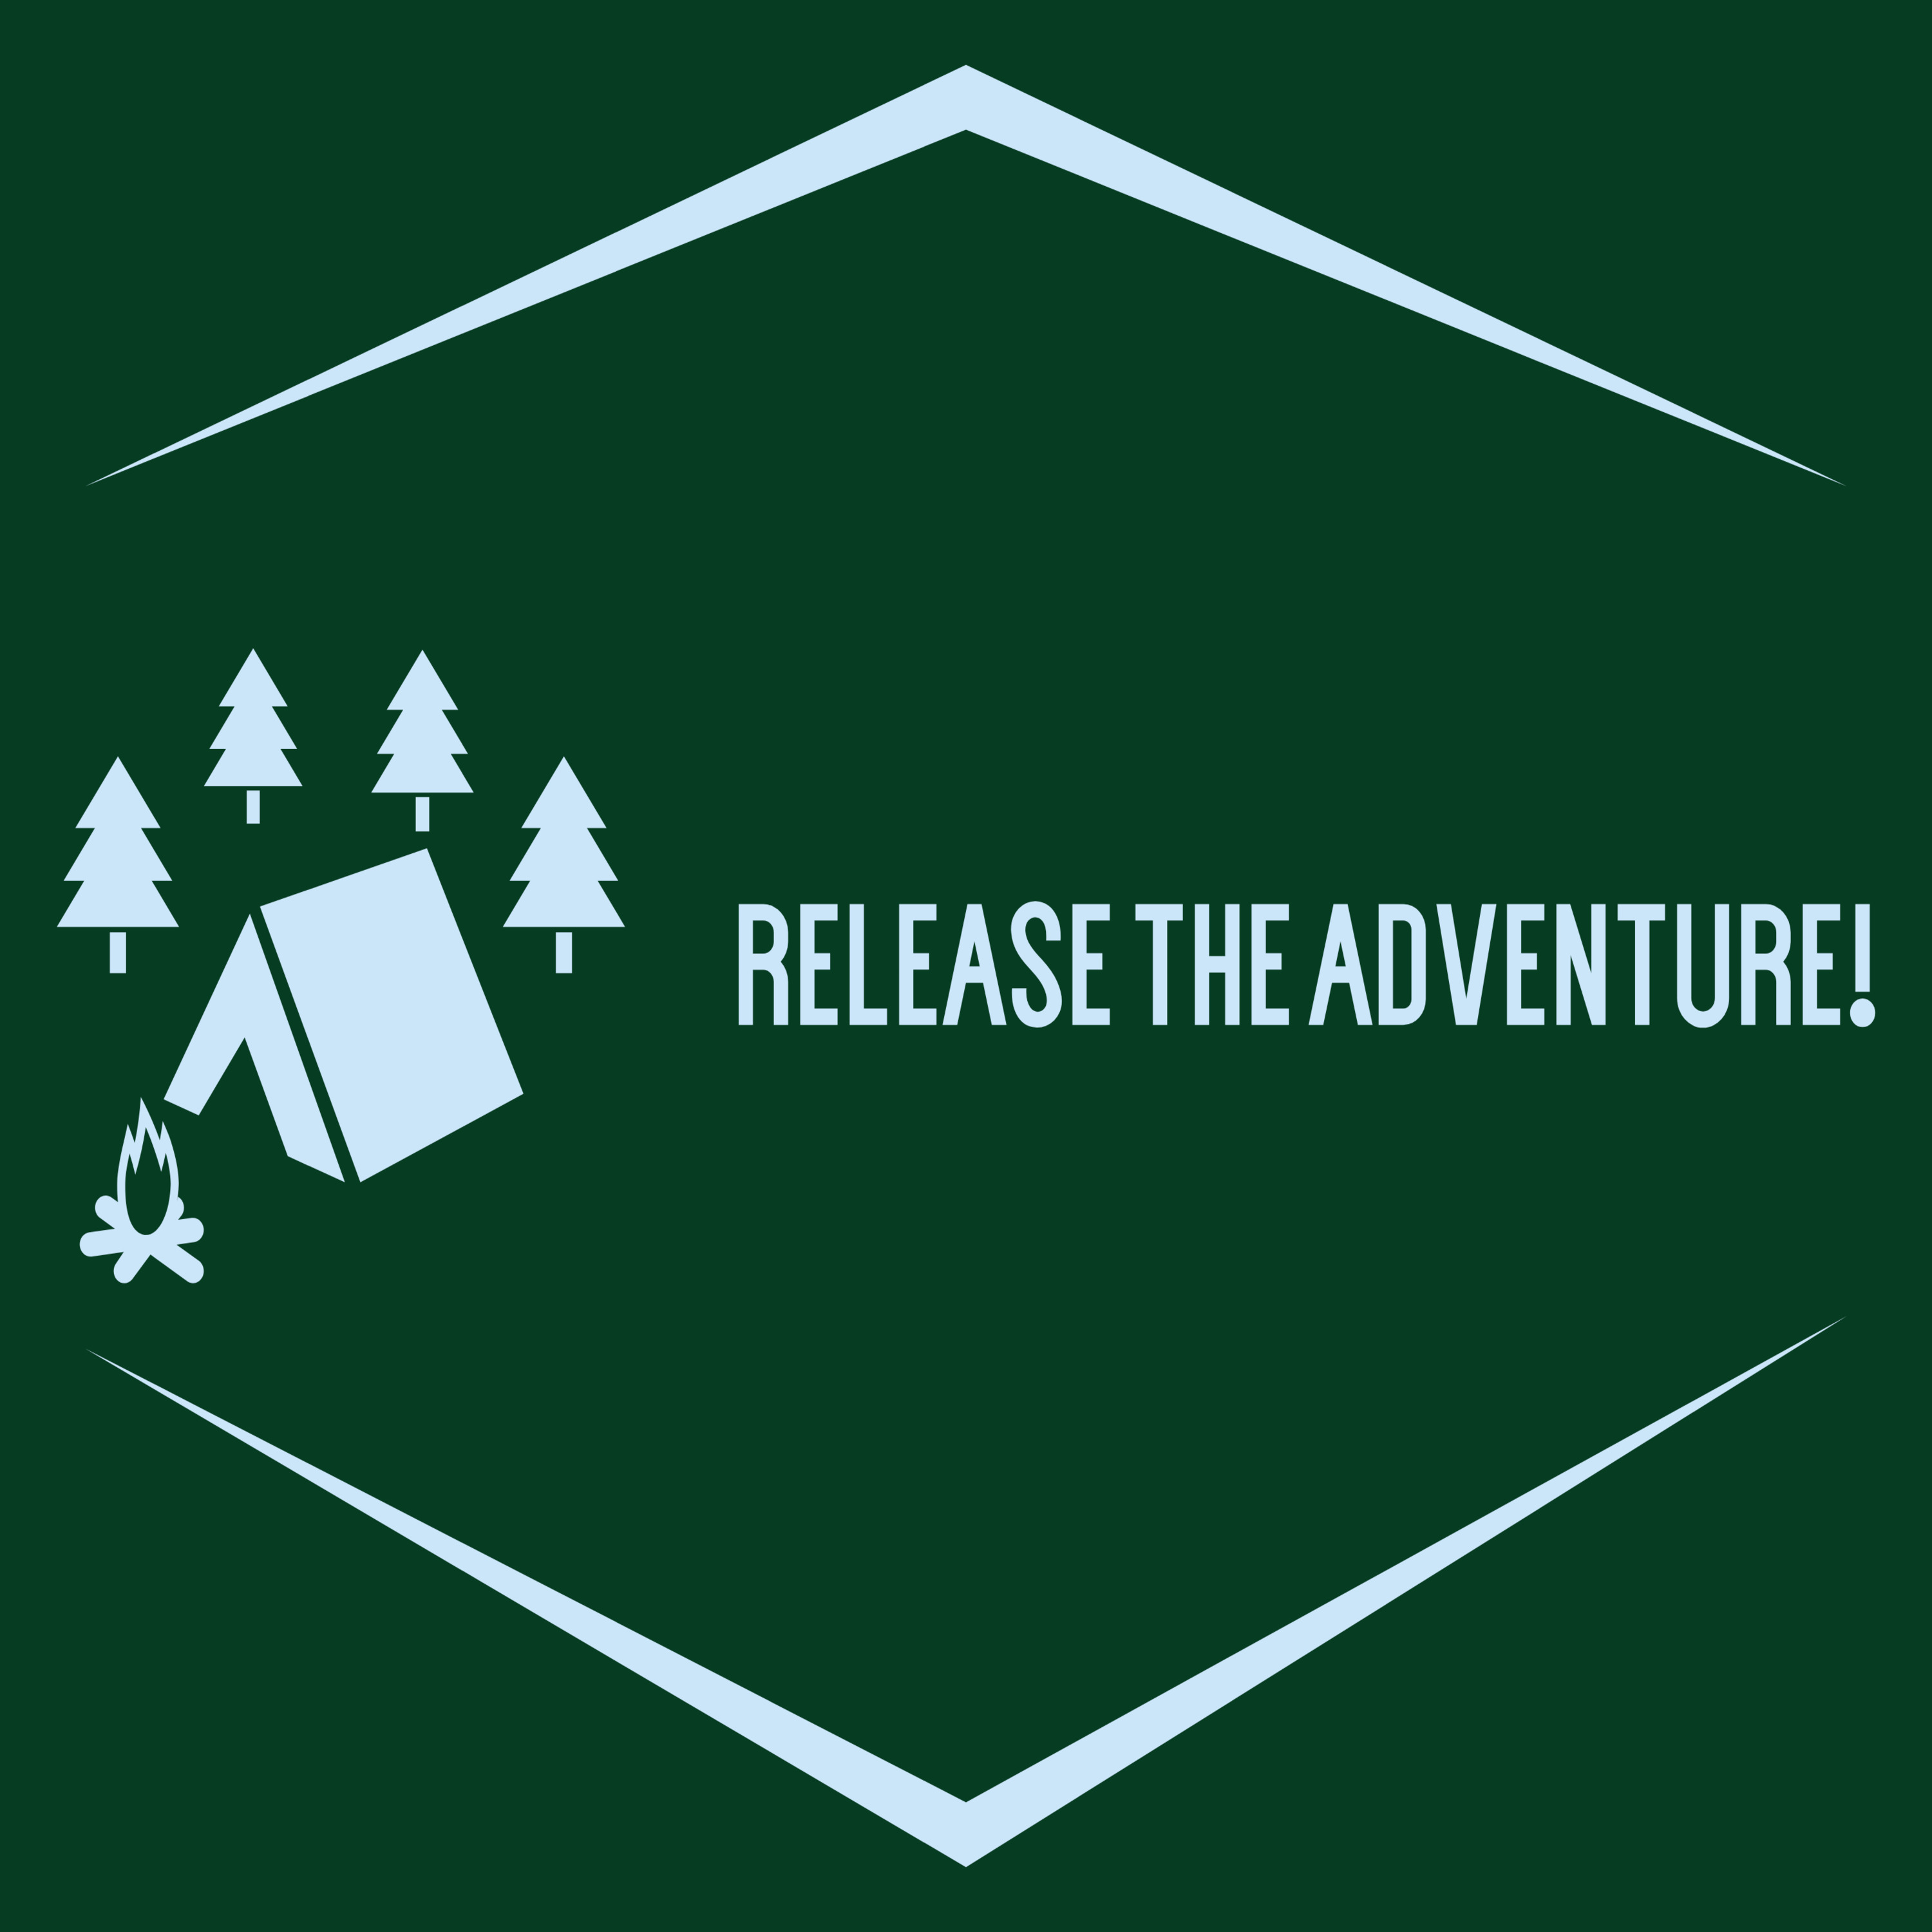 Release The Adventure